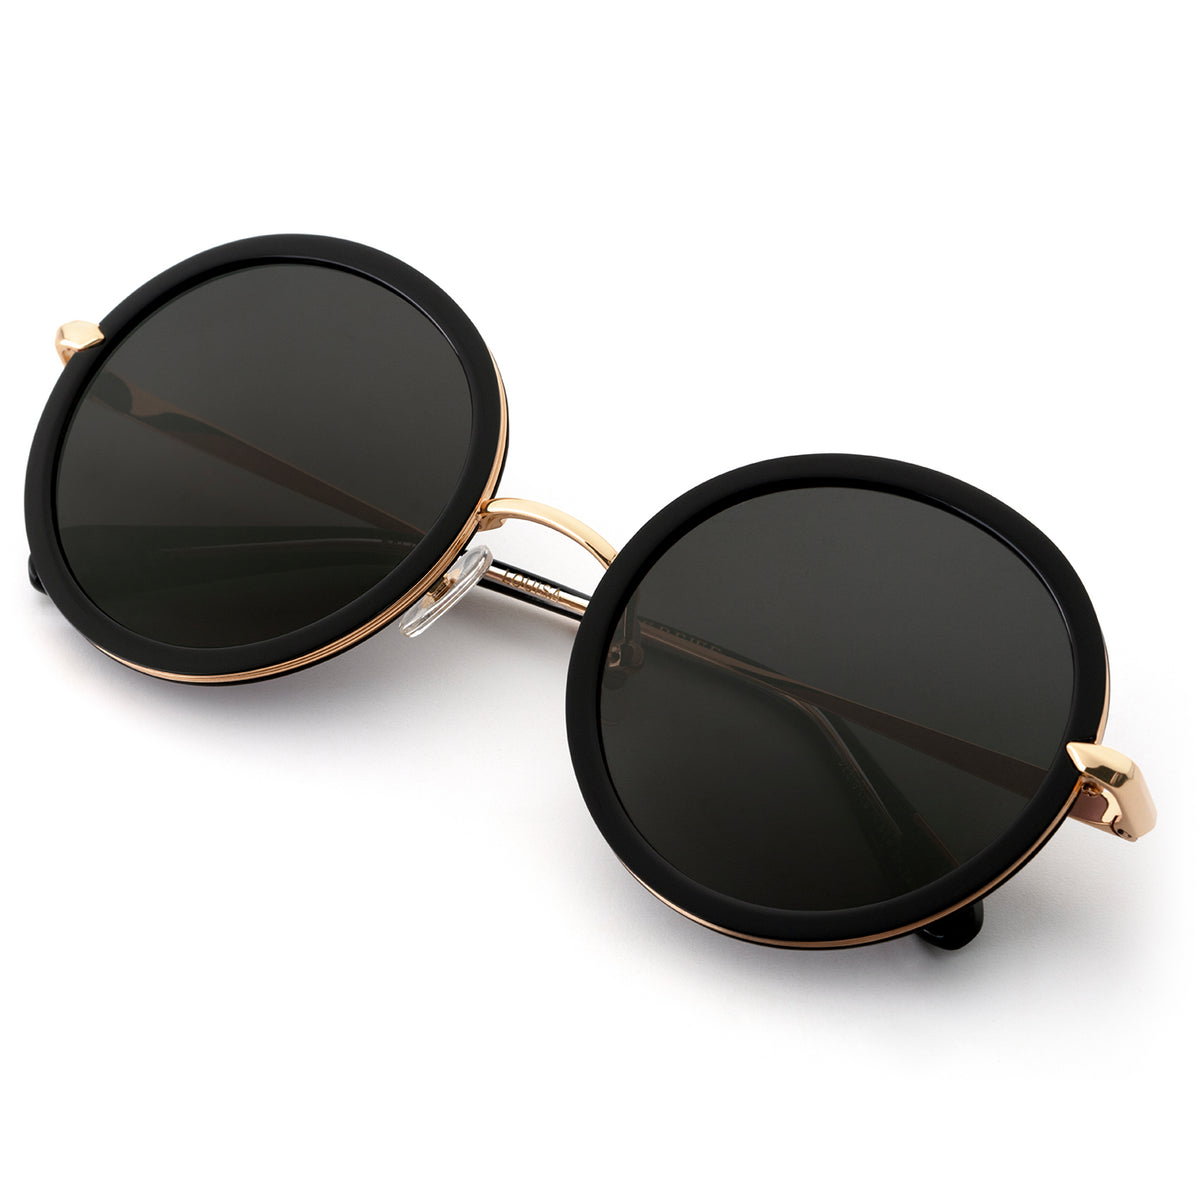 LOUISA | Black 24K handcrafted acetate sunglasses